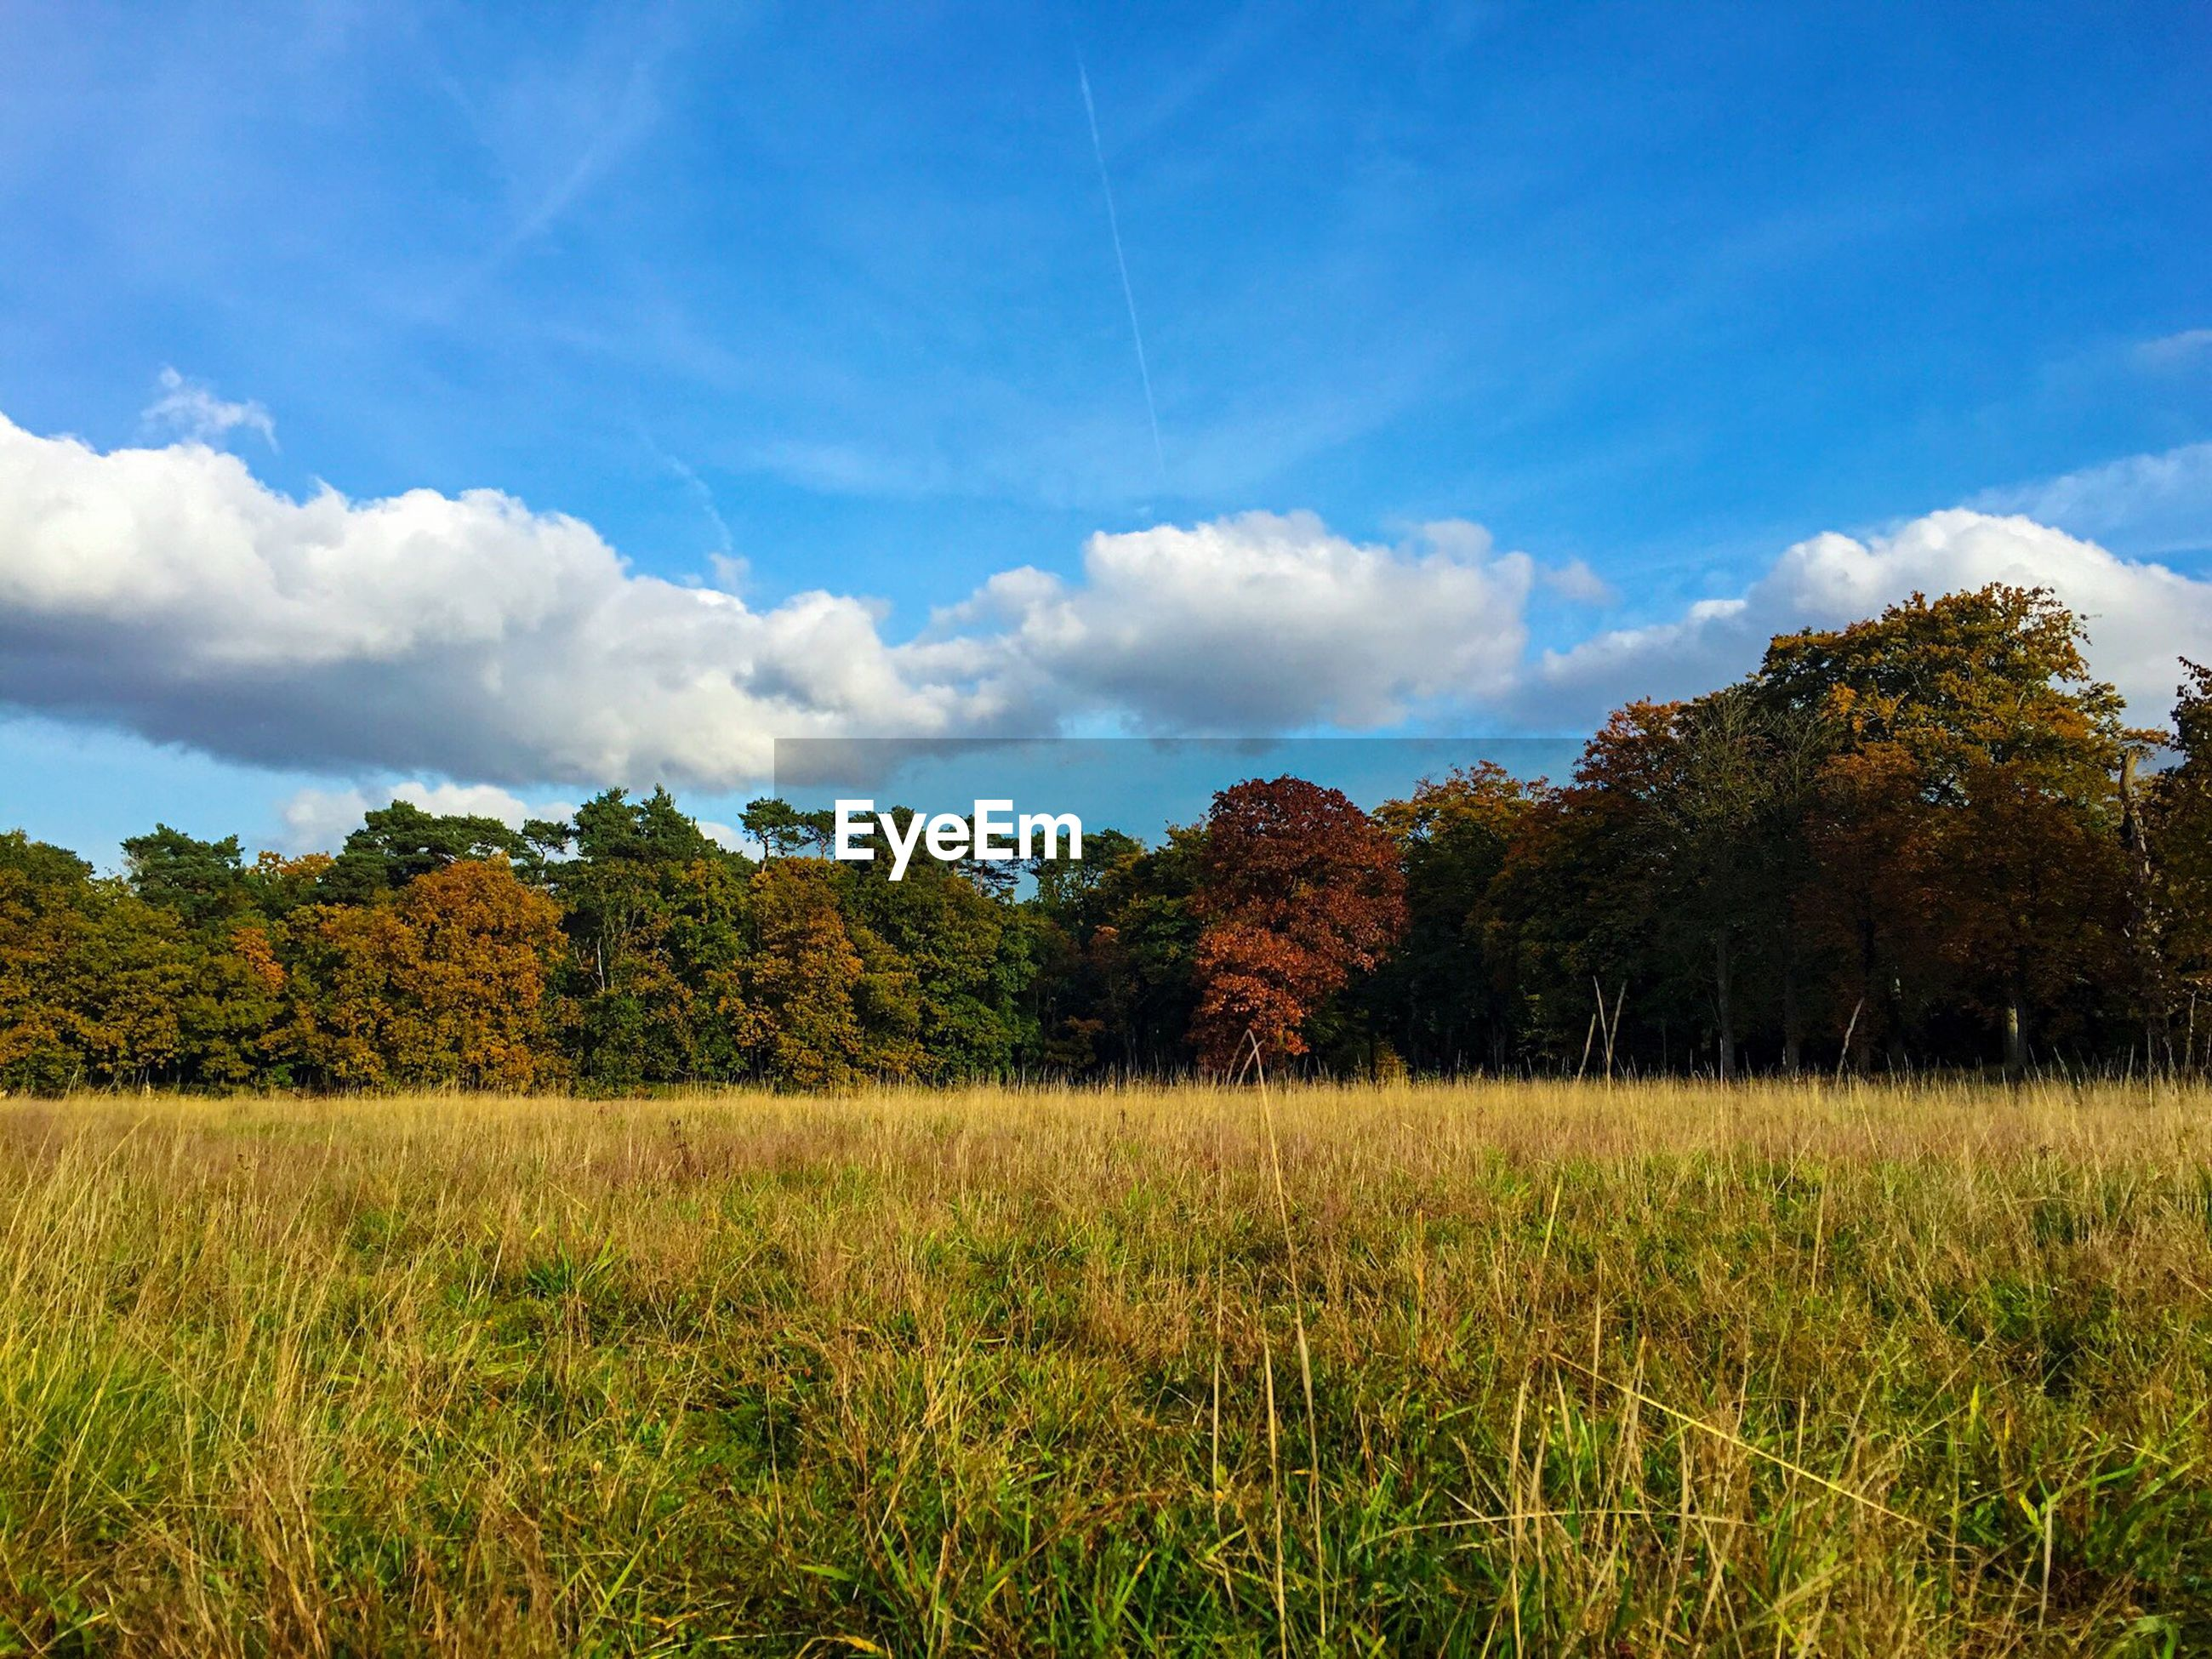 Trees growing by grassy field against sky during autumn